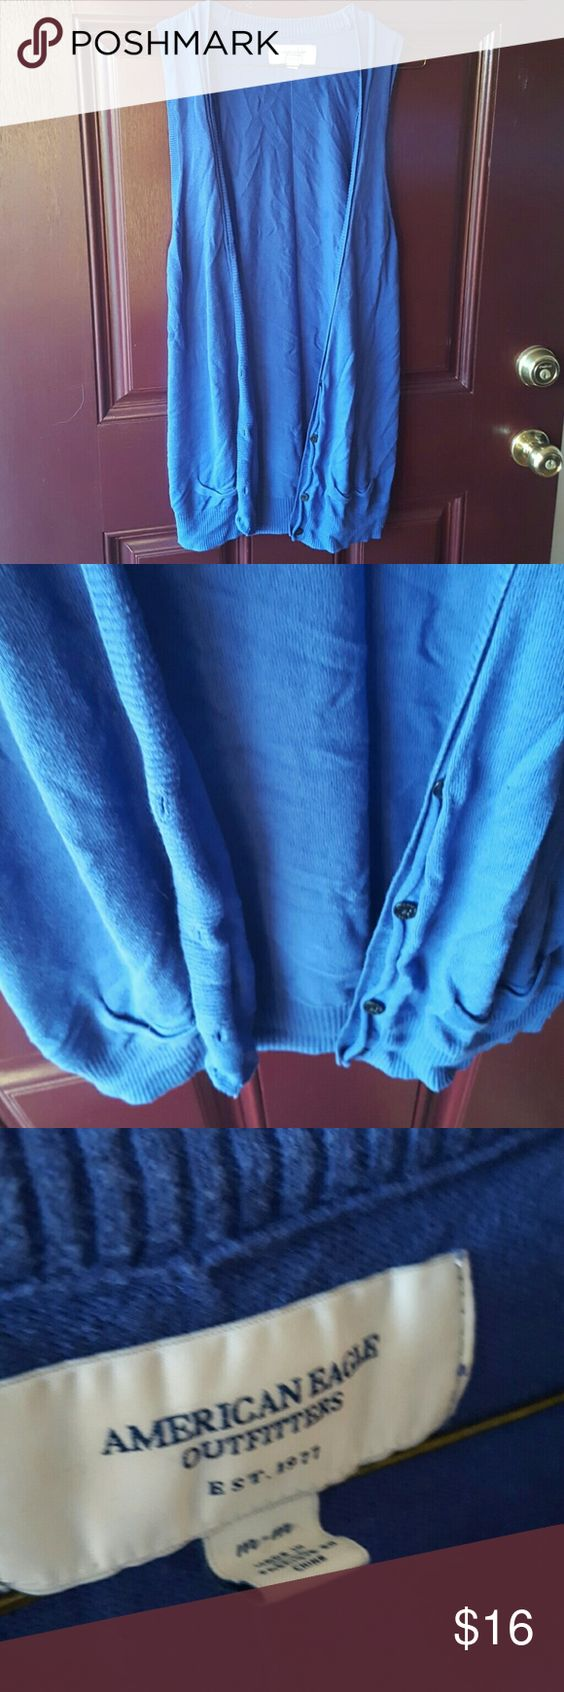 Sleeveless Cardigan EUC- Royal blue American Eagle cardigan. Has buttons and pockets. American Eagle Outfitters Sweaters Cardigans